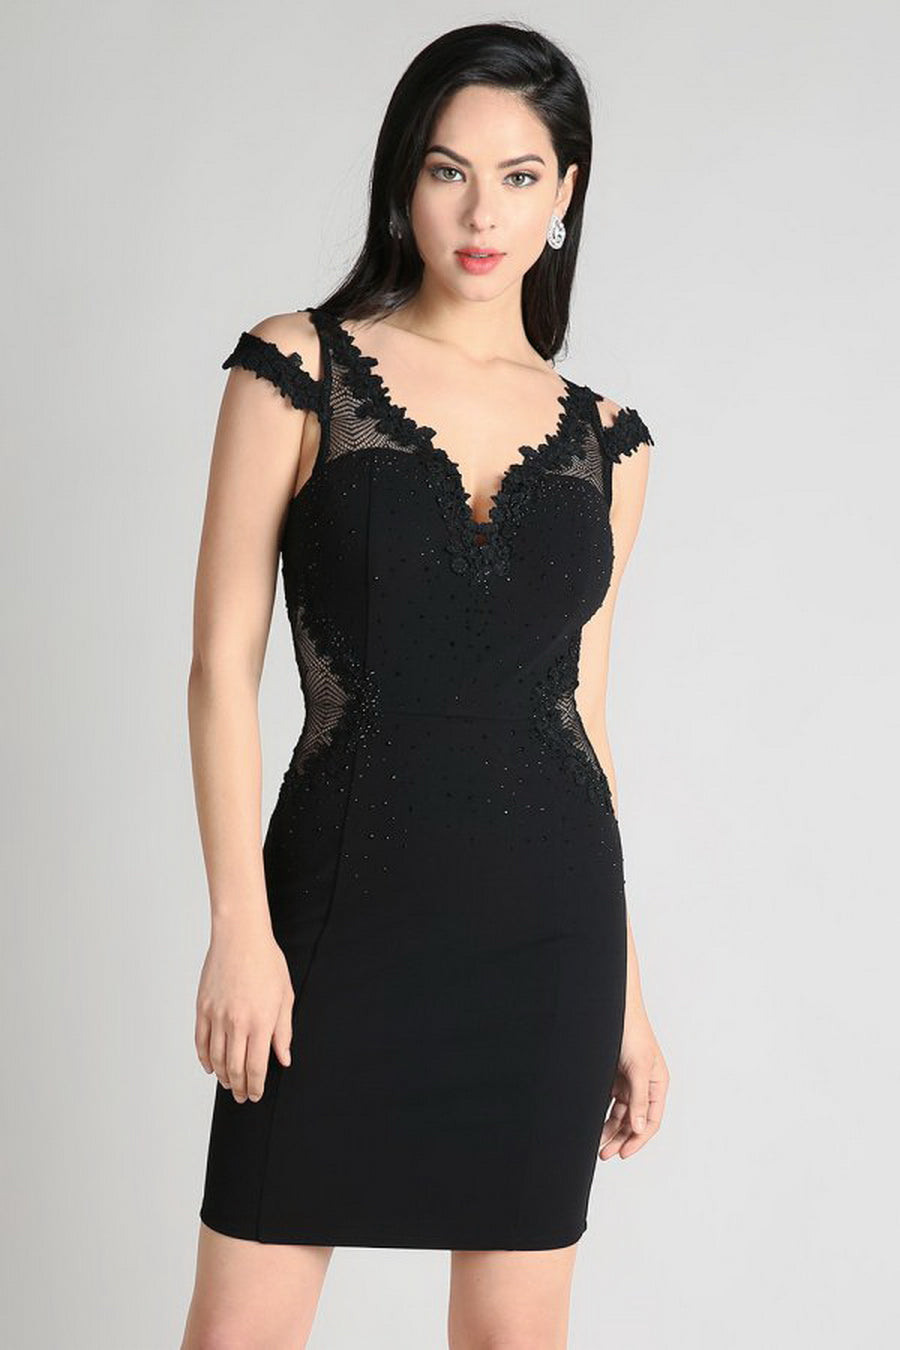 Black Sheer Contrast Lace Trim Cocktail Dress